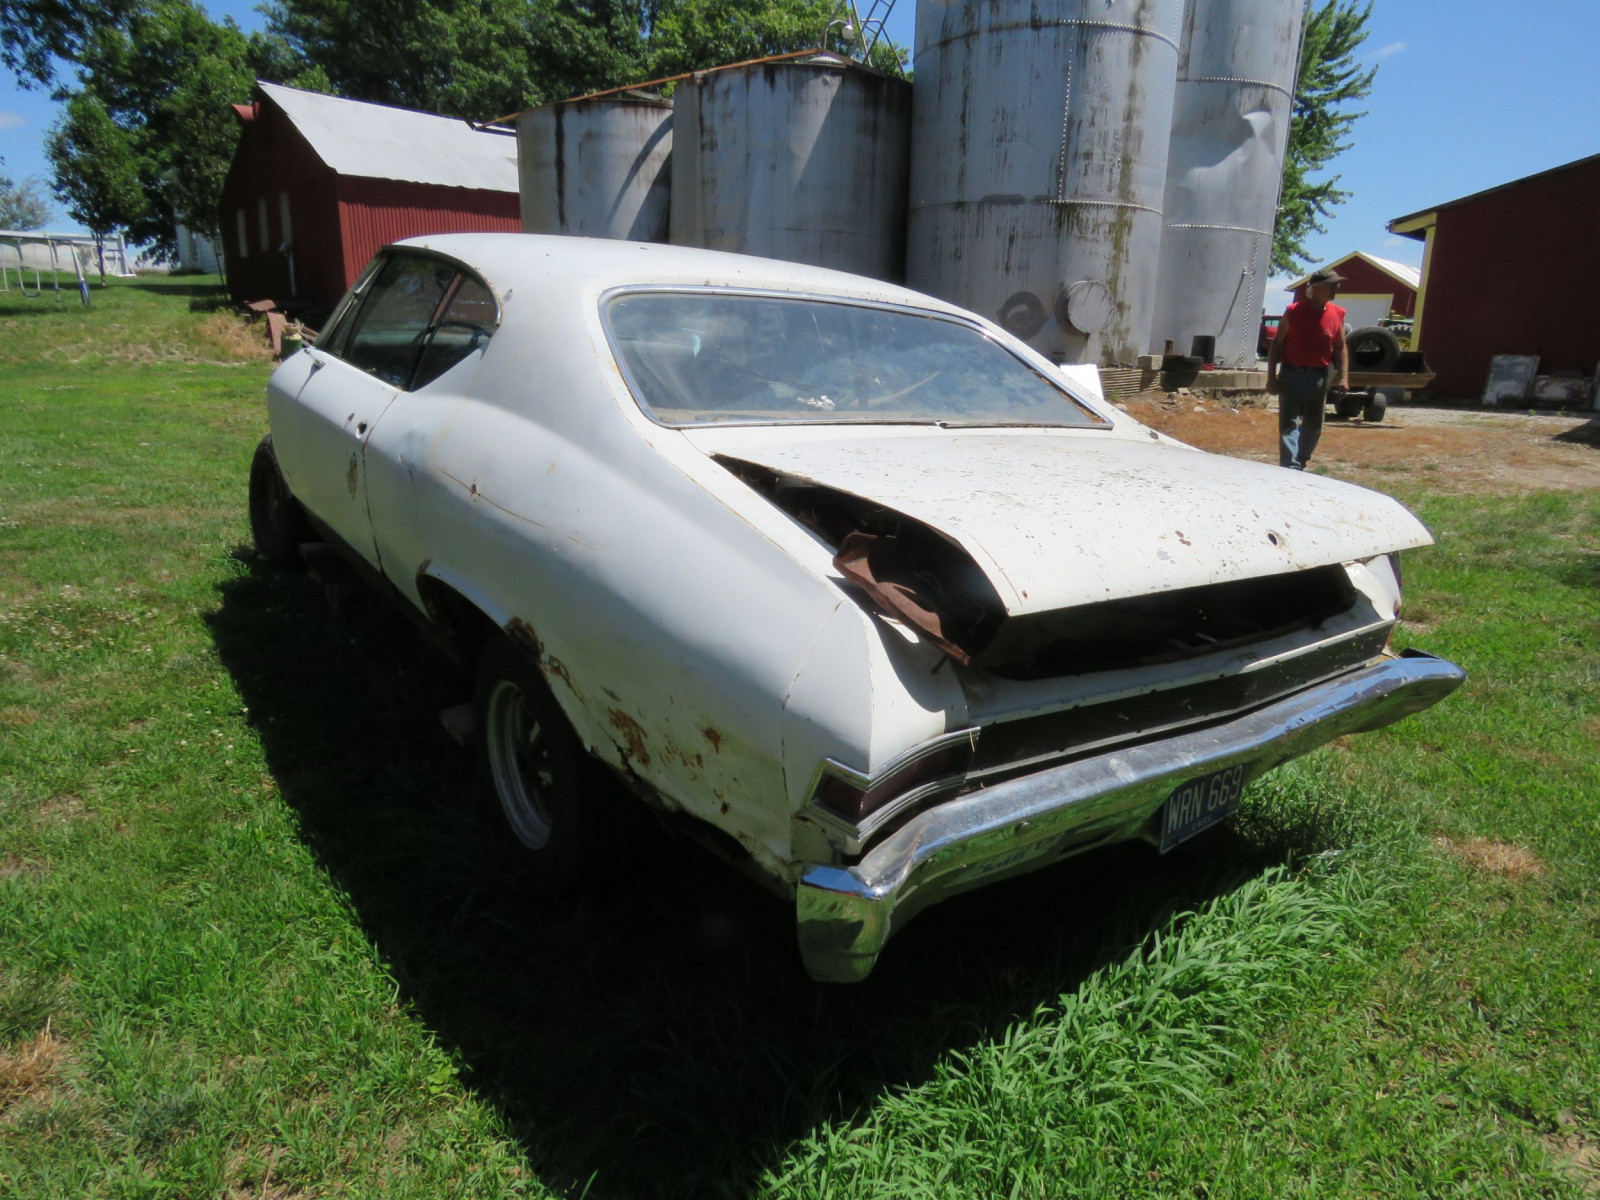 1968 Chevrolet Chevelle 2dr HT Project or Parts - Image 6